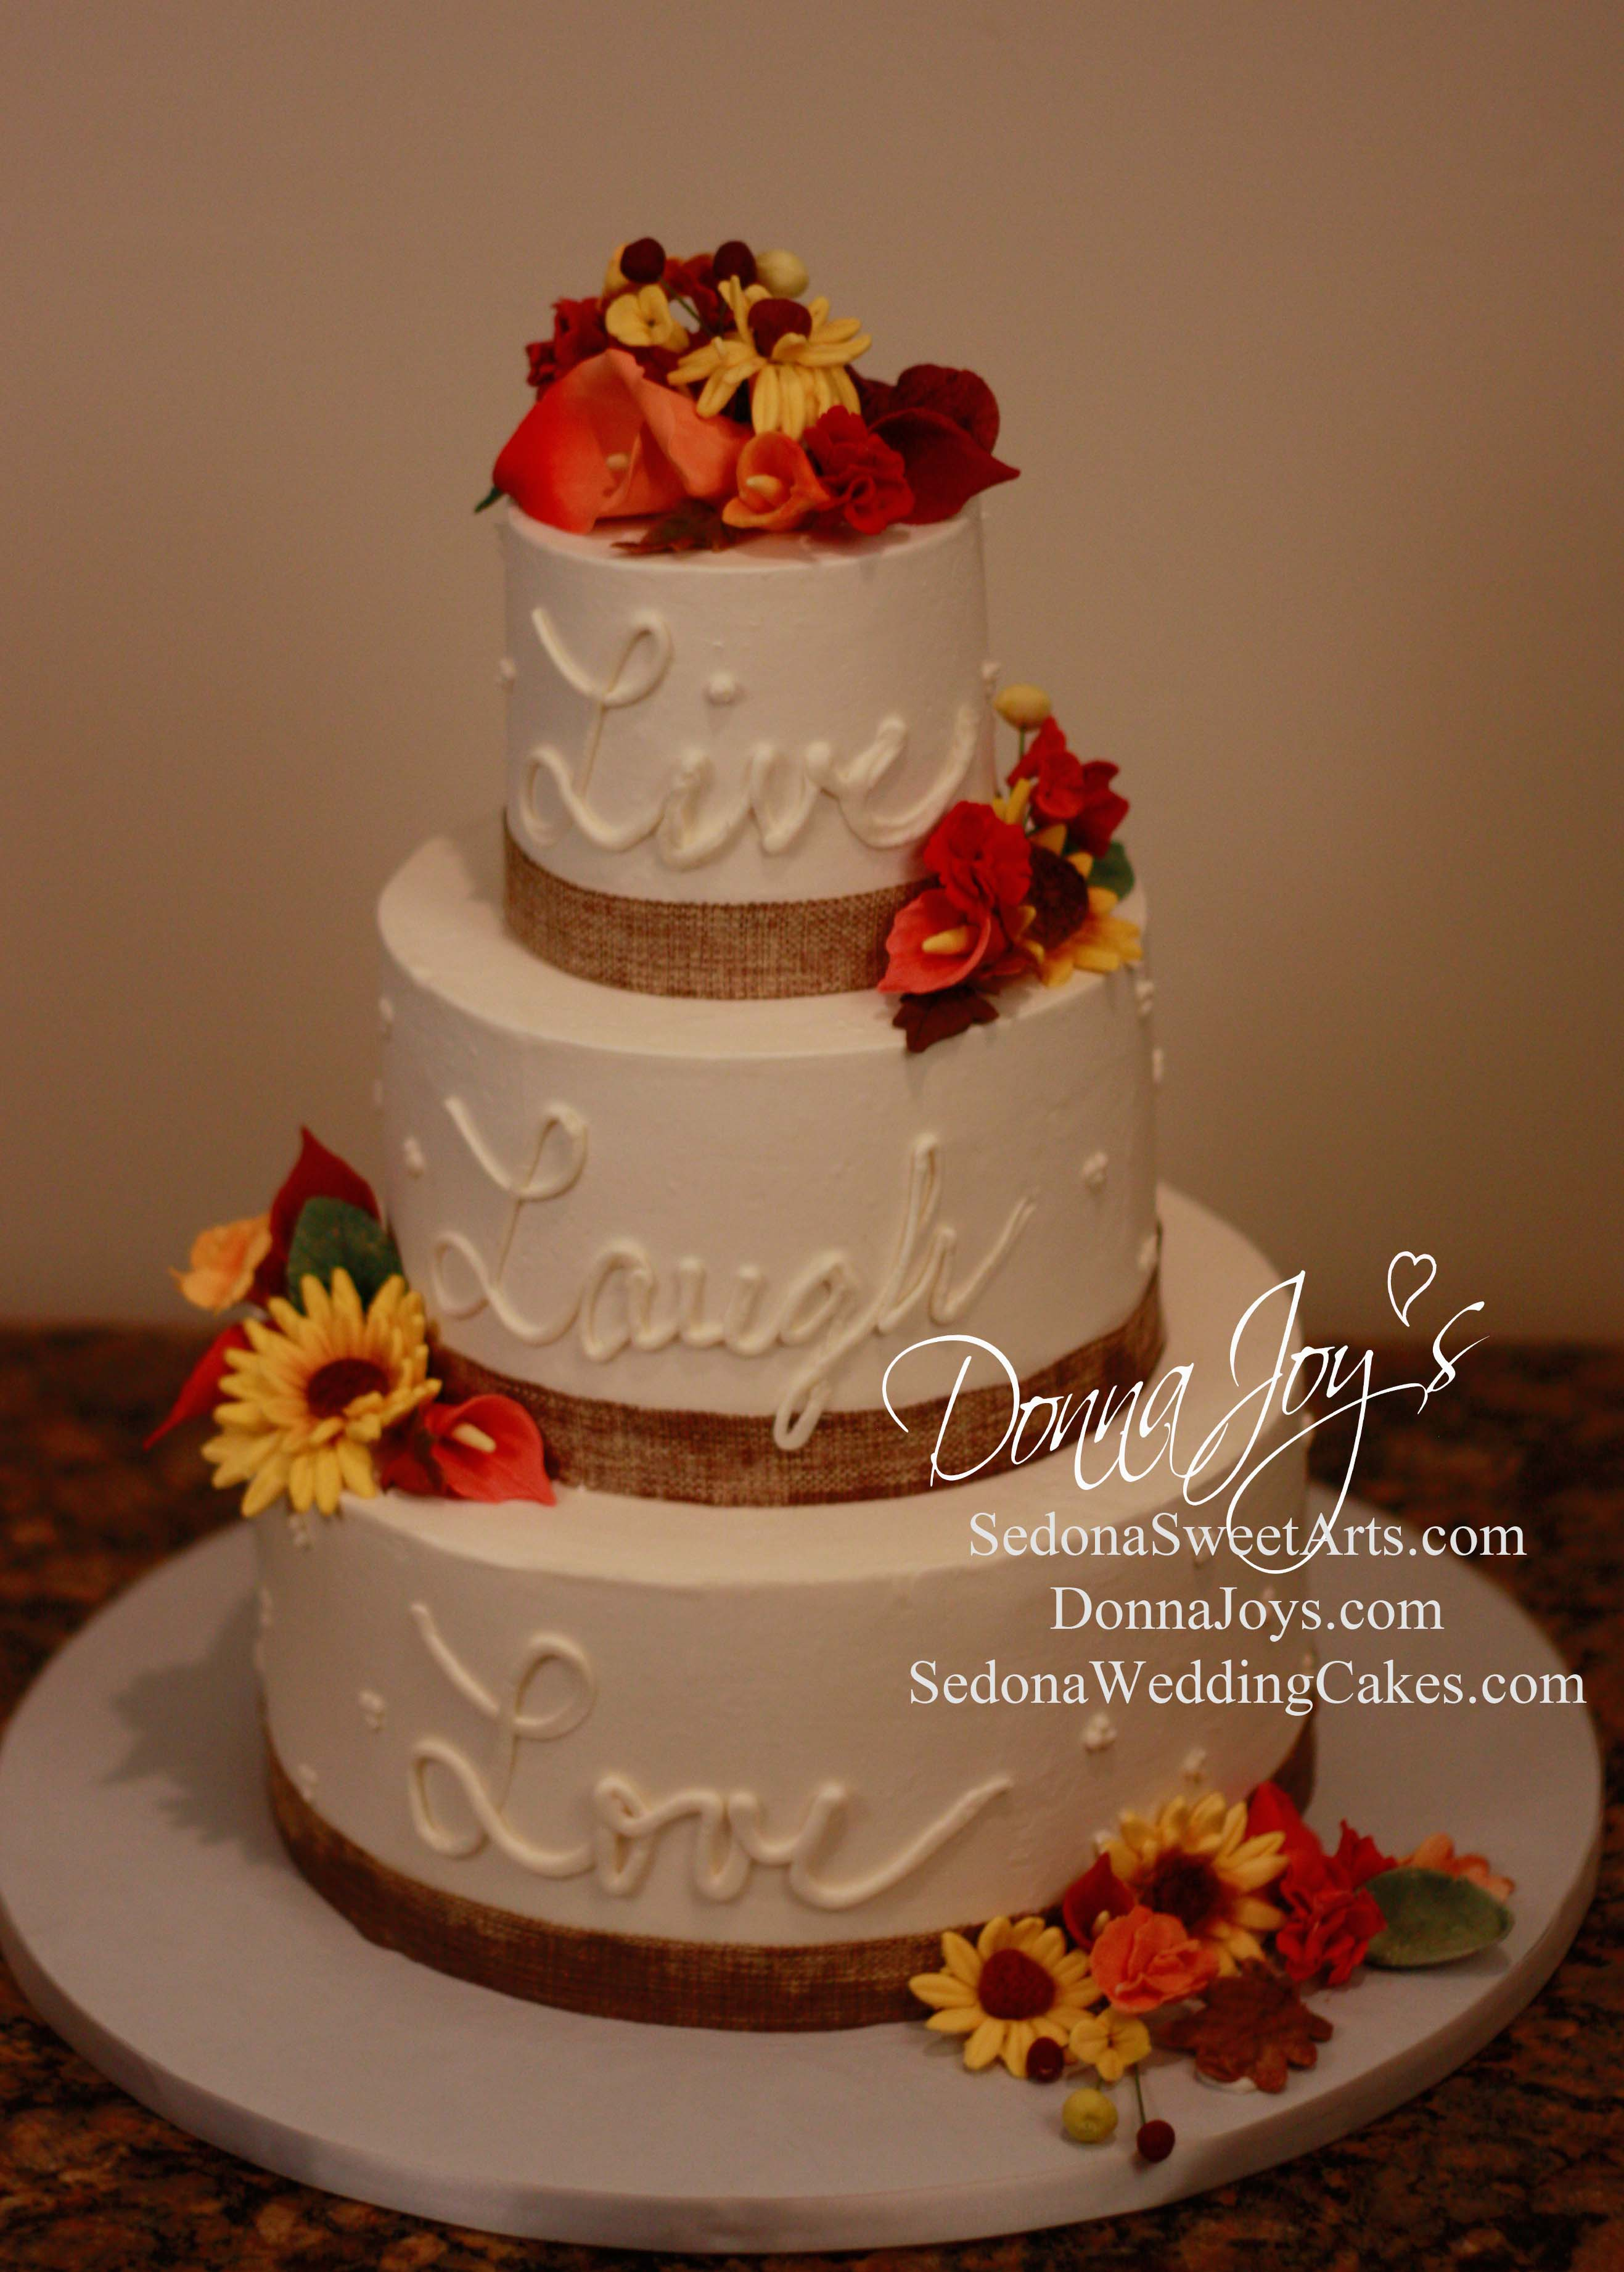 Live Laugh Love in Buttercream and Fall Sugar Flowers Sedona